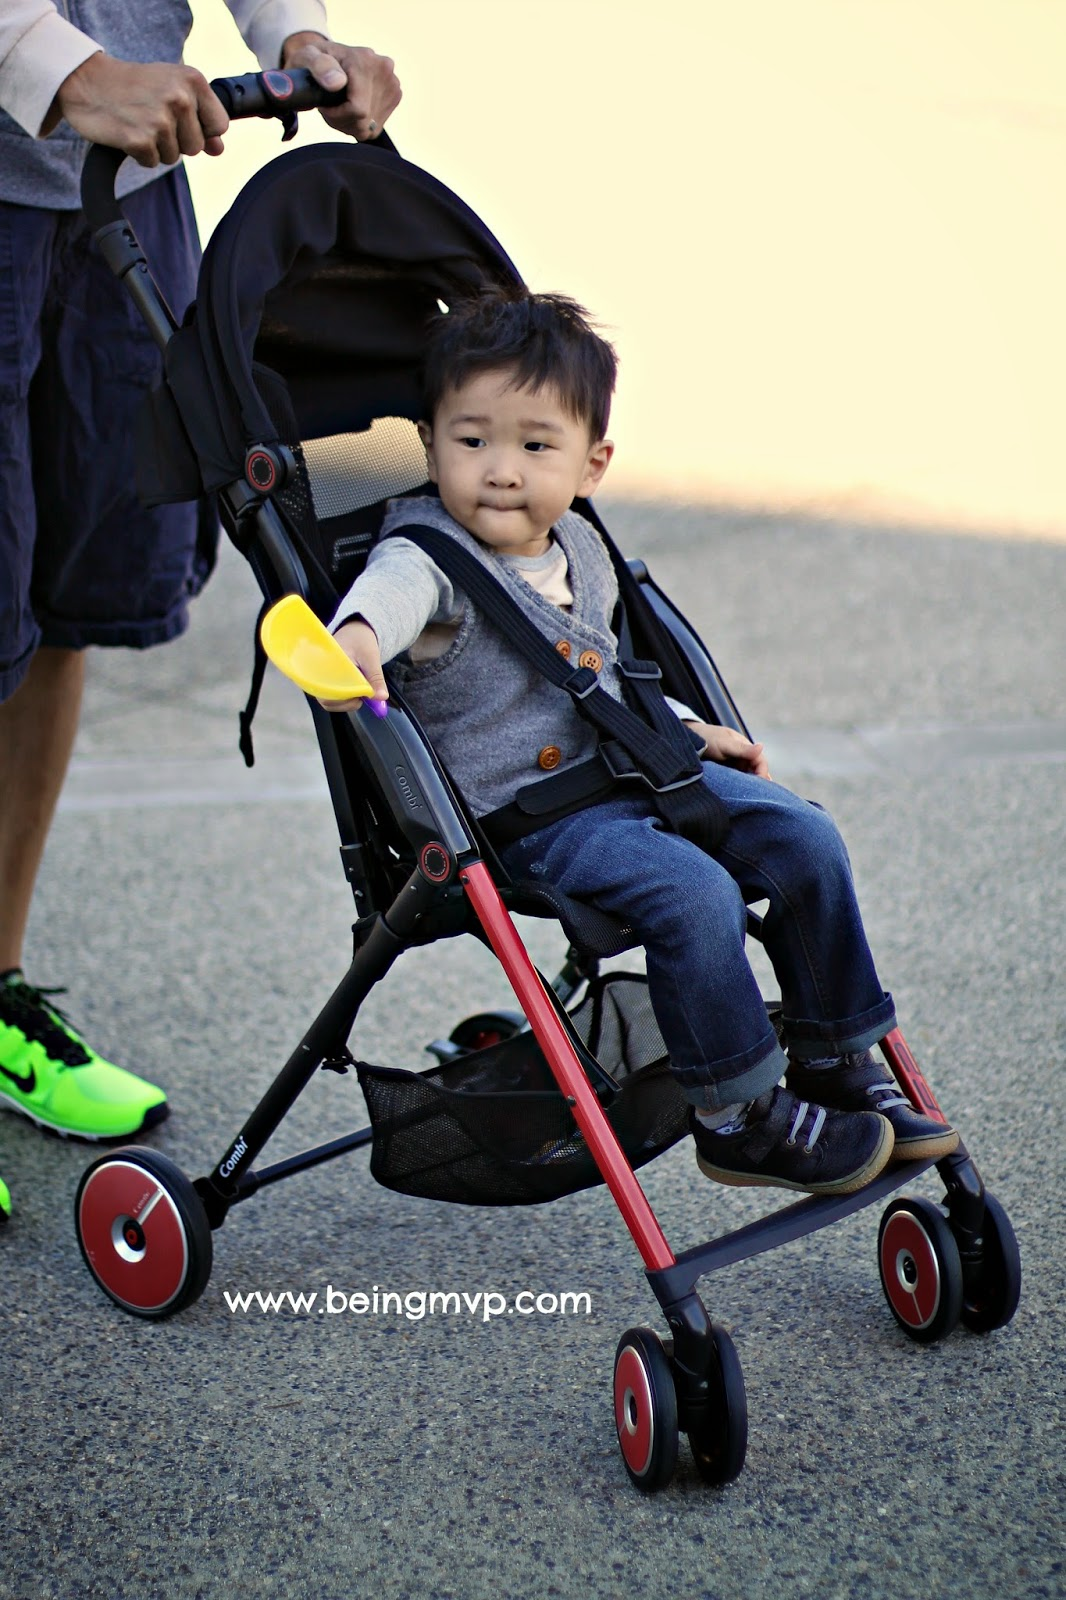 being MVP: Combi F2 Stroller Review